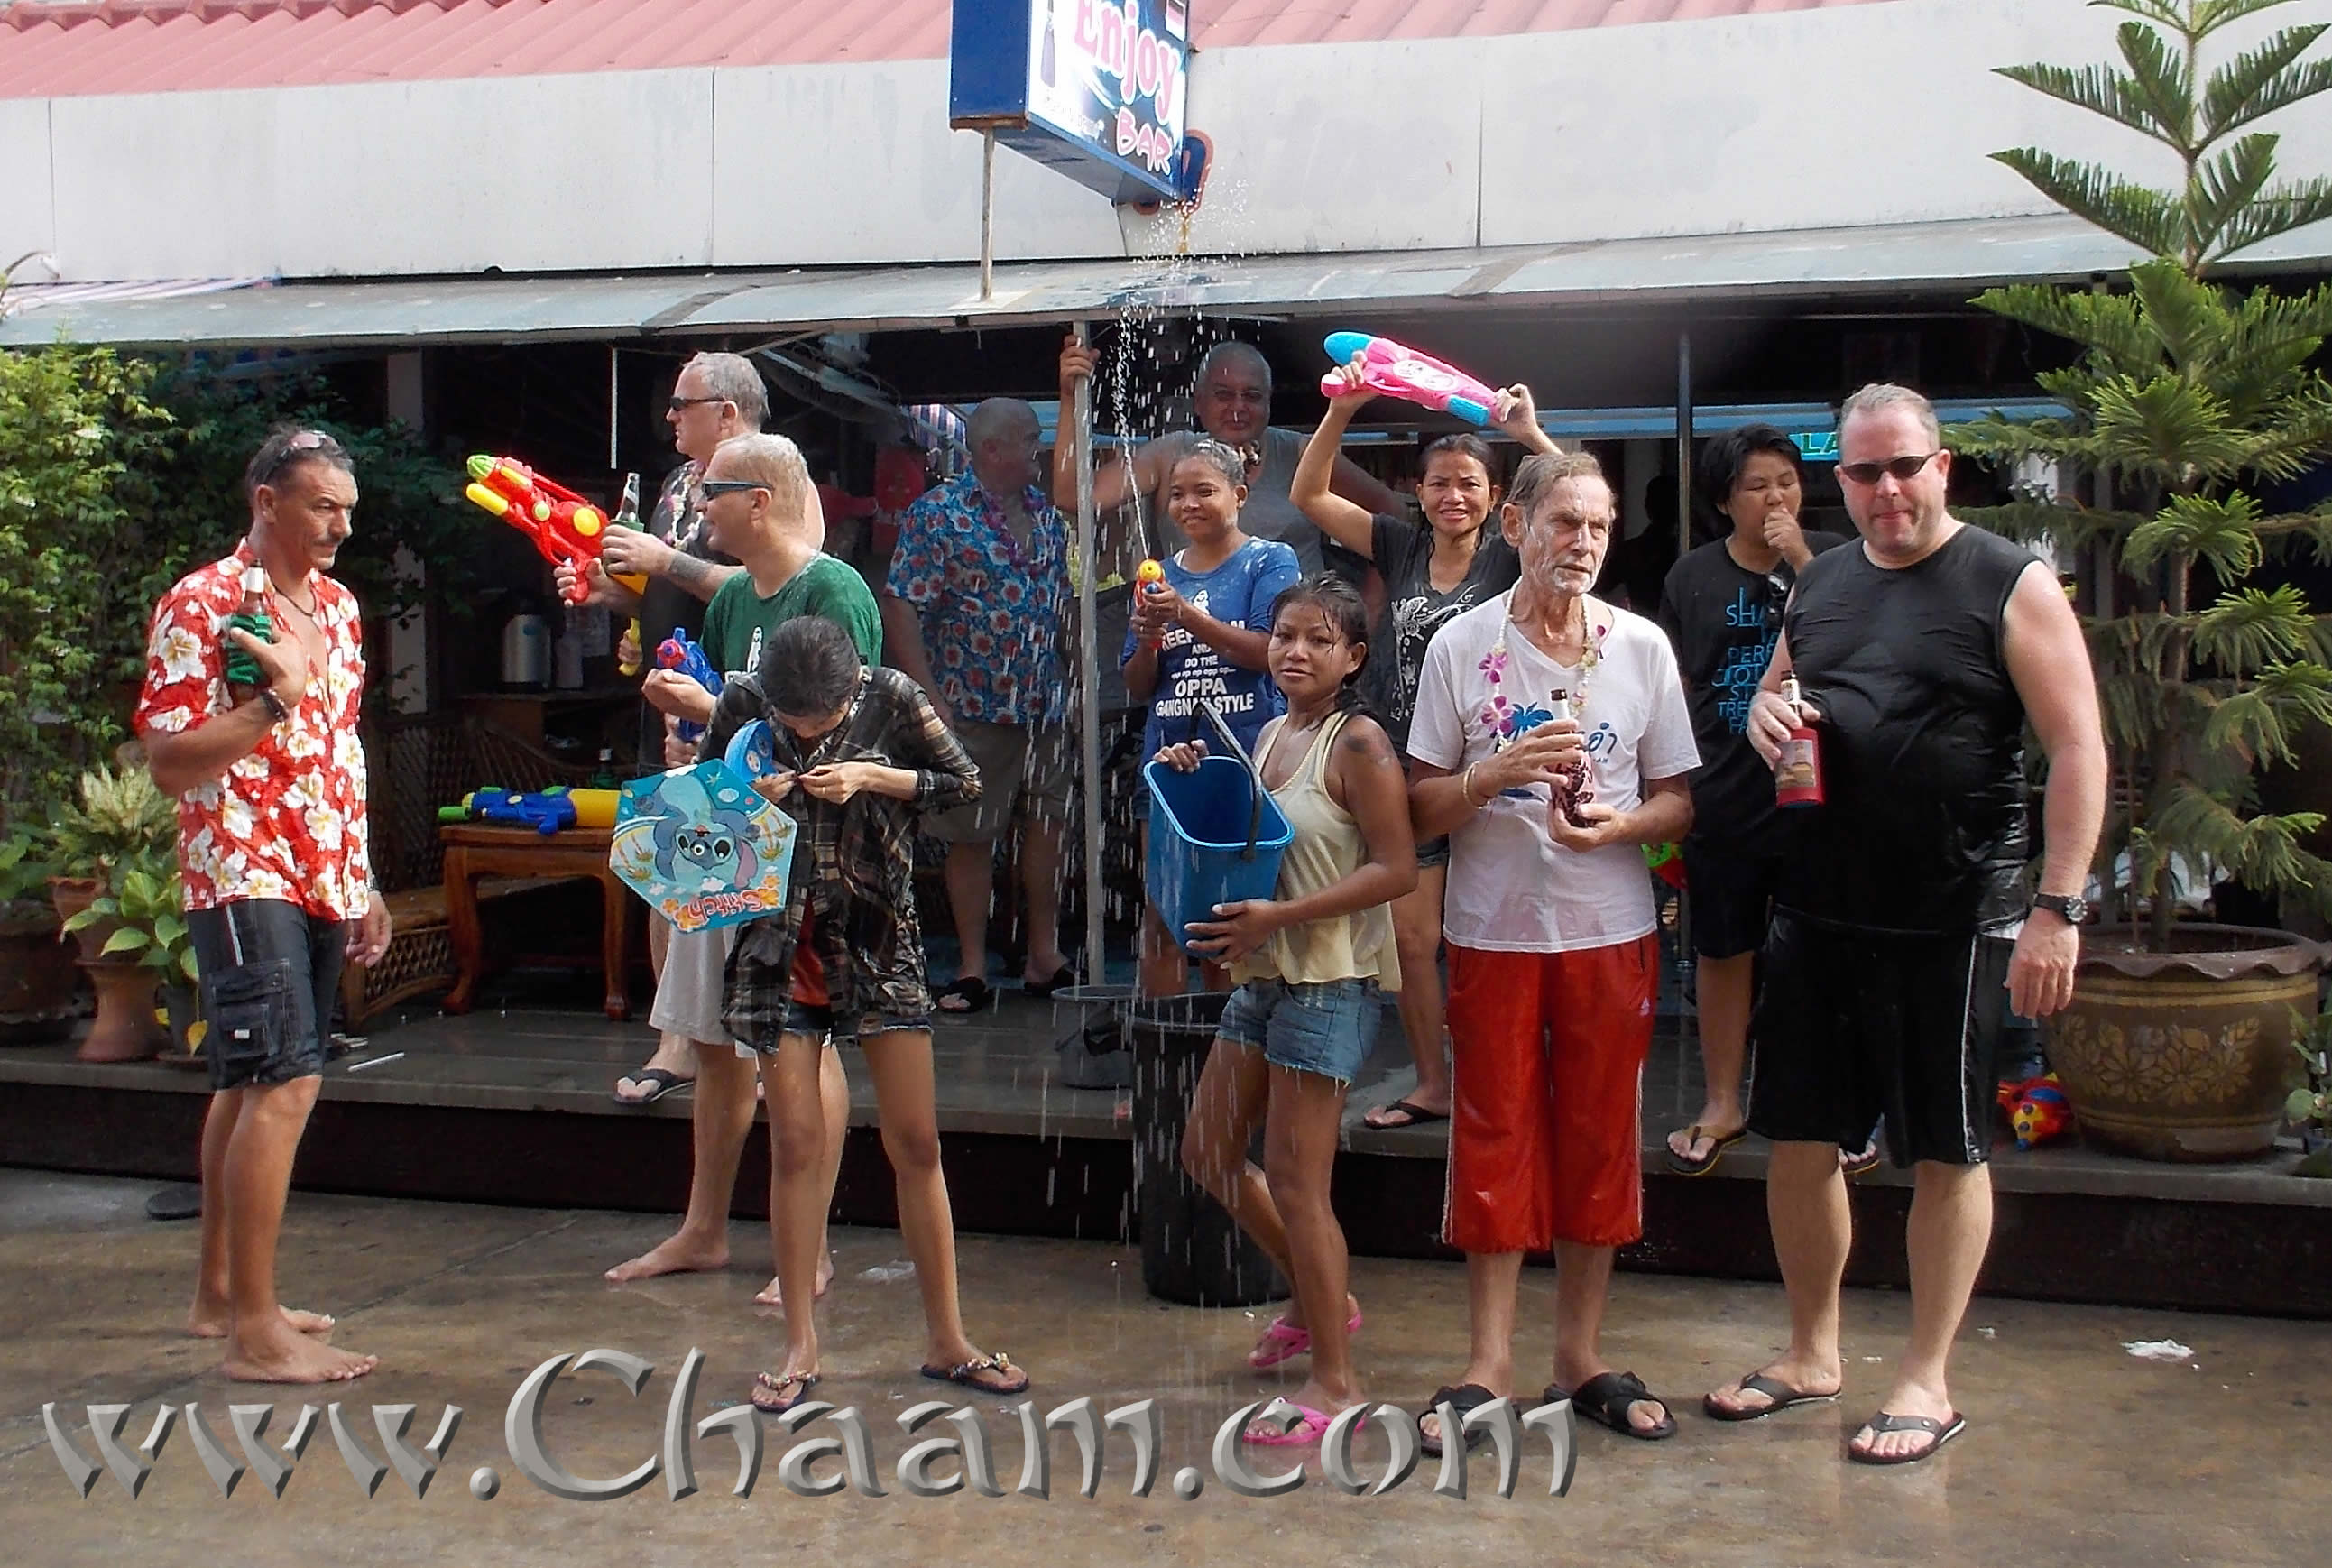 Water fights at Songkran in Cha-Am